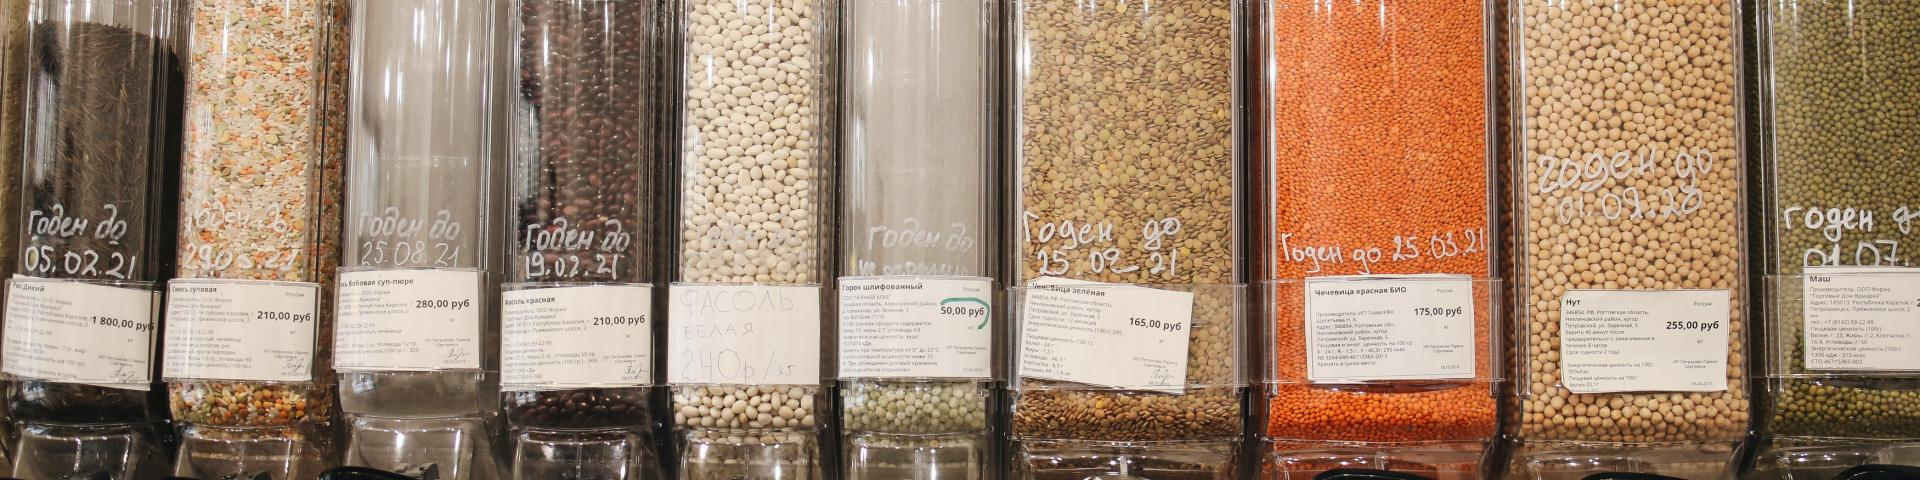 Grains, pulses and oilseeds